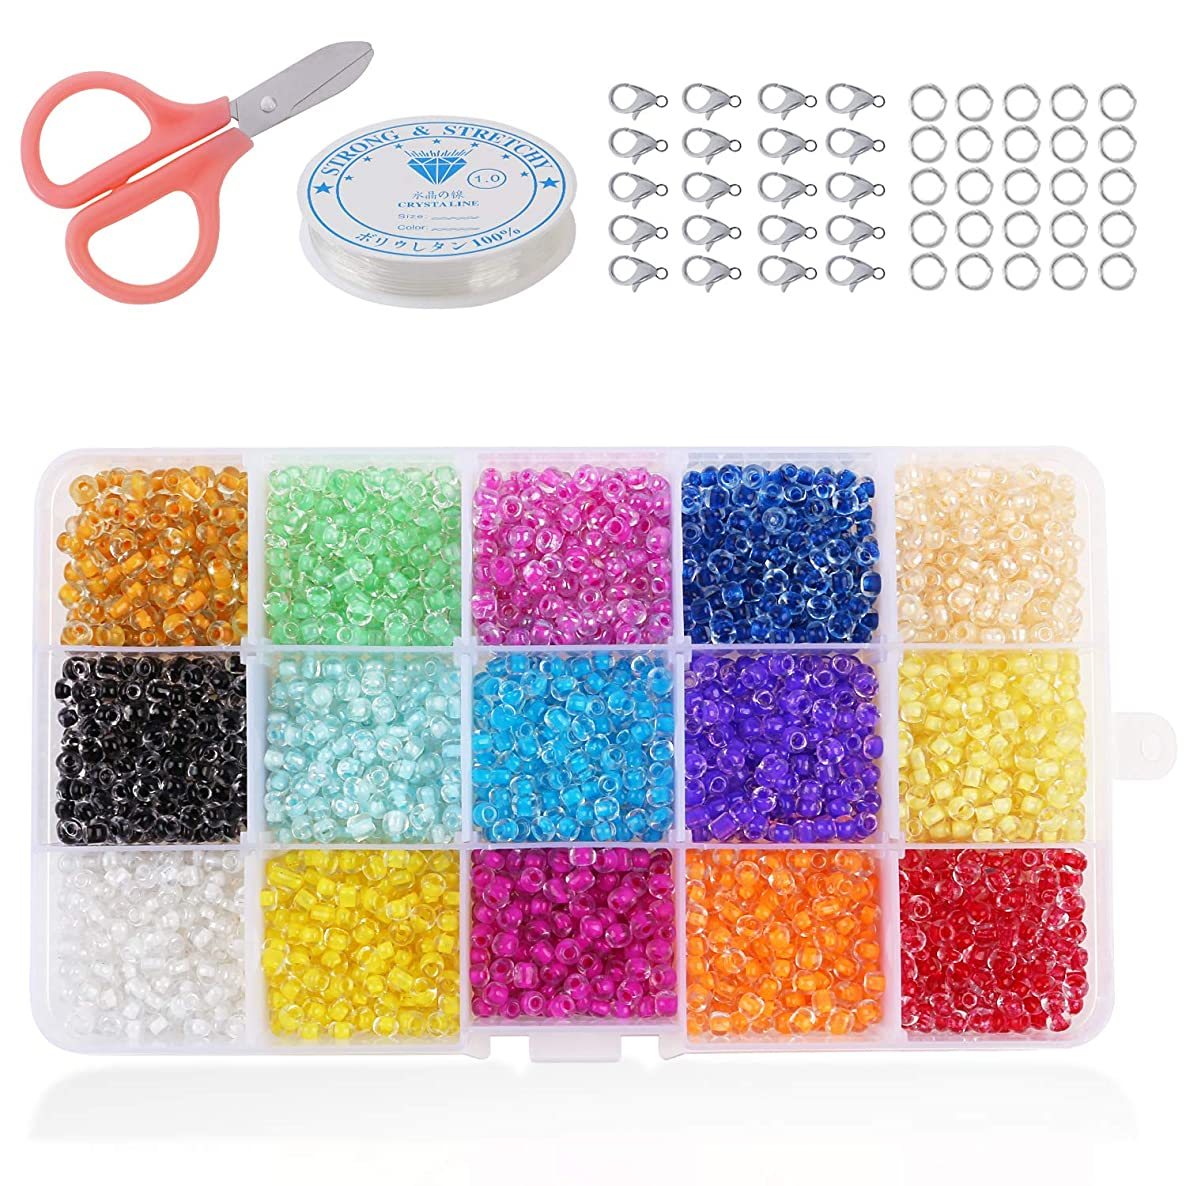 Phogary 9000pcs Glass Seed Beads, Mixed Colors Small Pony Beads Assorted Kit Multi Colors Lustered Loose Spacer Beads, 3mm Round, Hole 1.0mm for Jewelry Making, DIY Crafting (15 Colors)